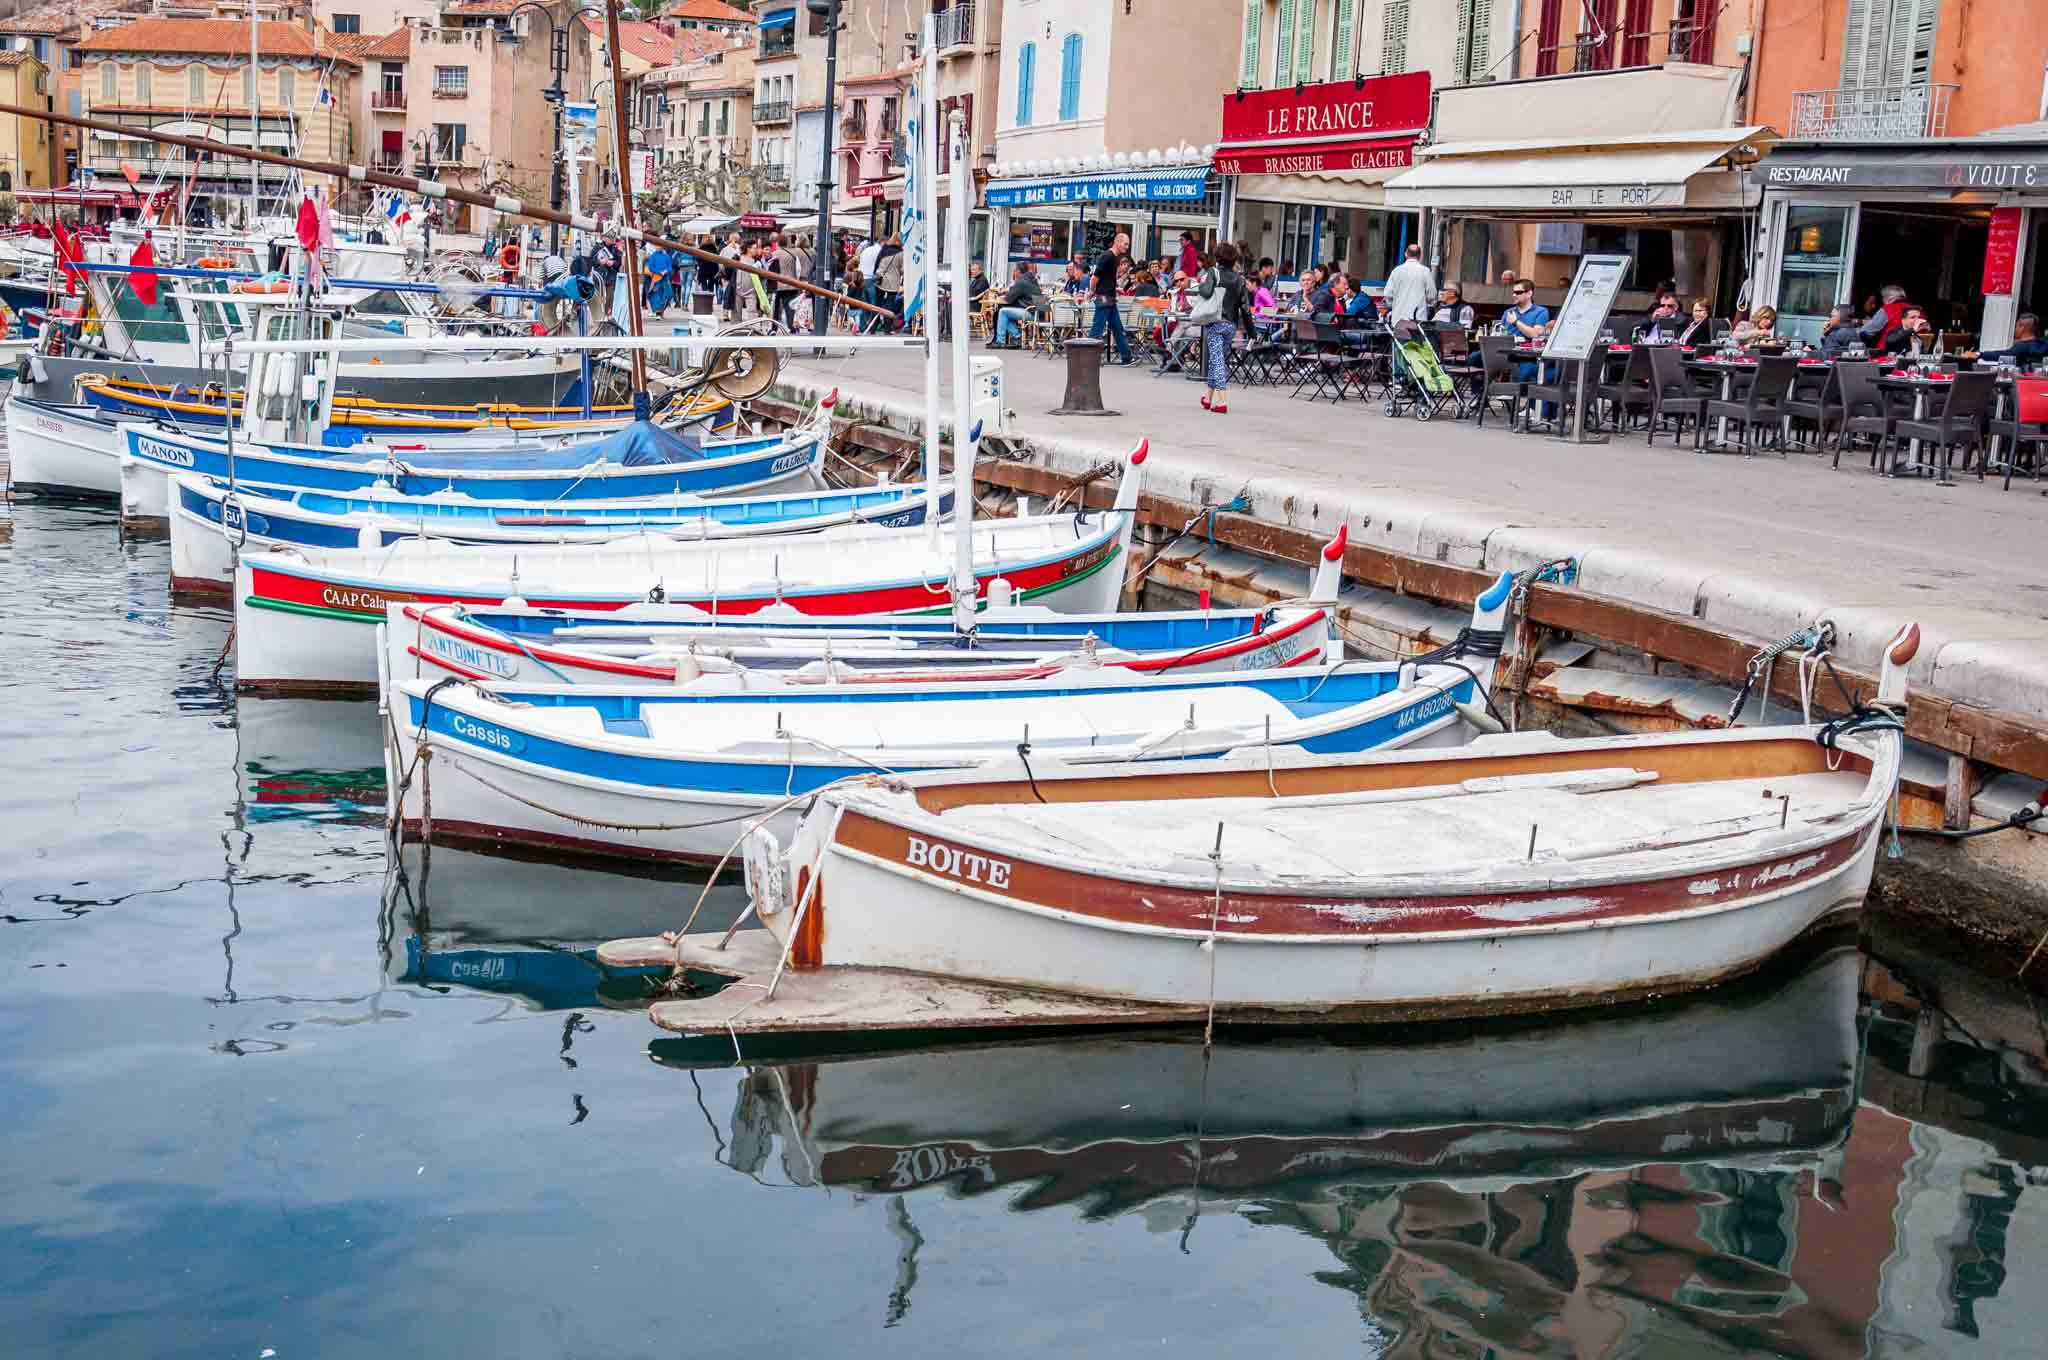 Boats and harborside restaurants in Cassis, France